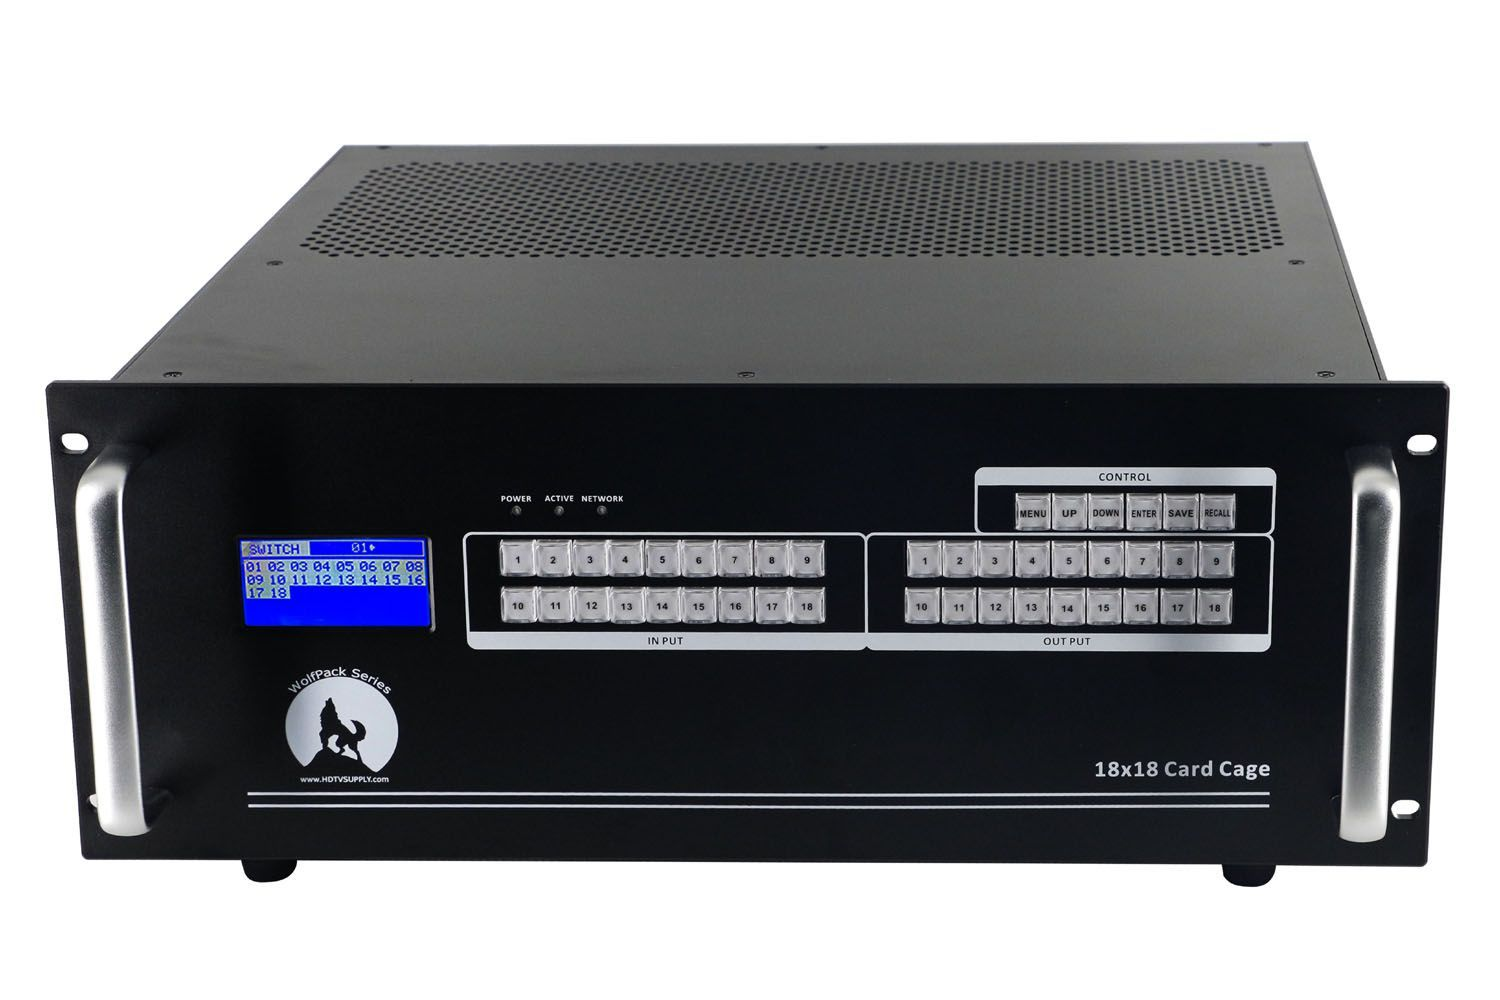 16x12 HDMI Matrix Switch with Video Wall Processor